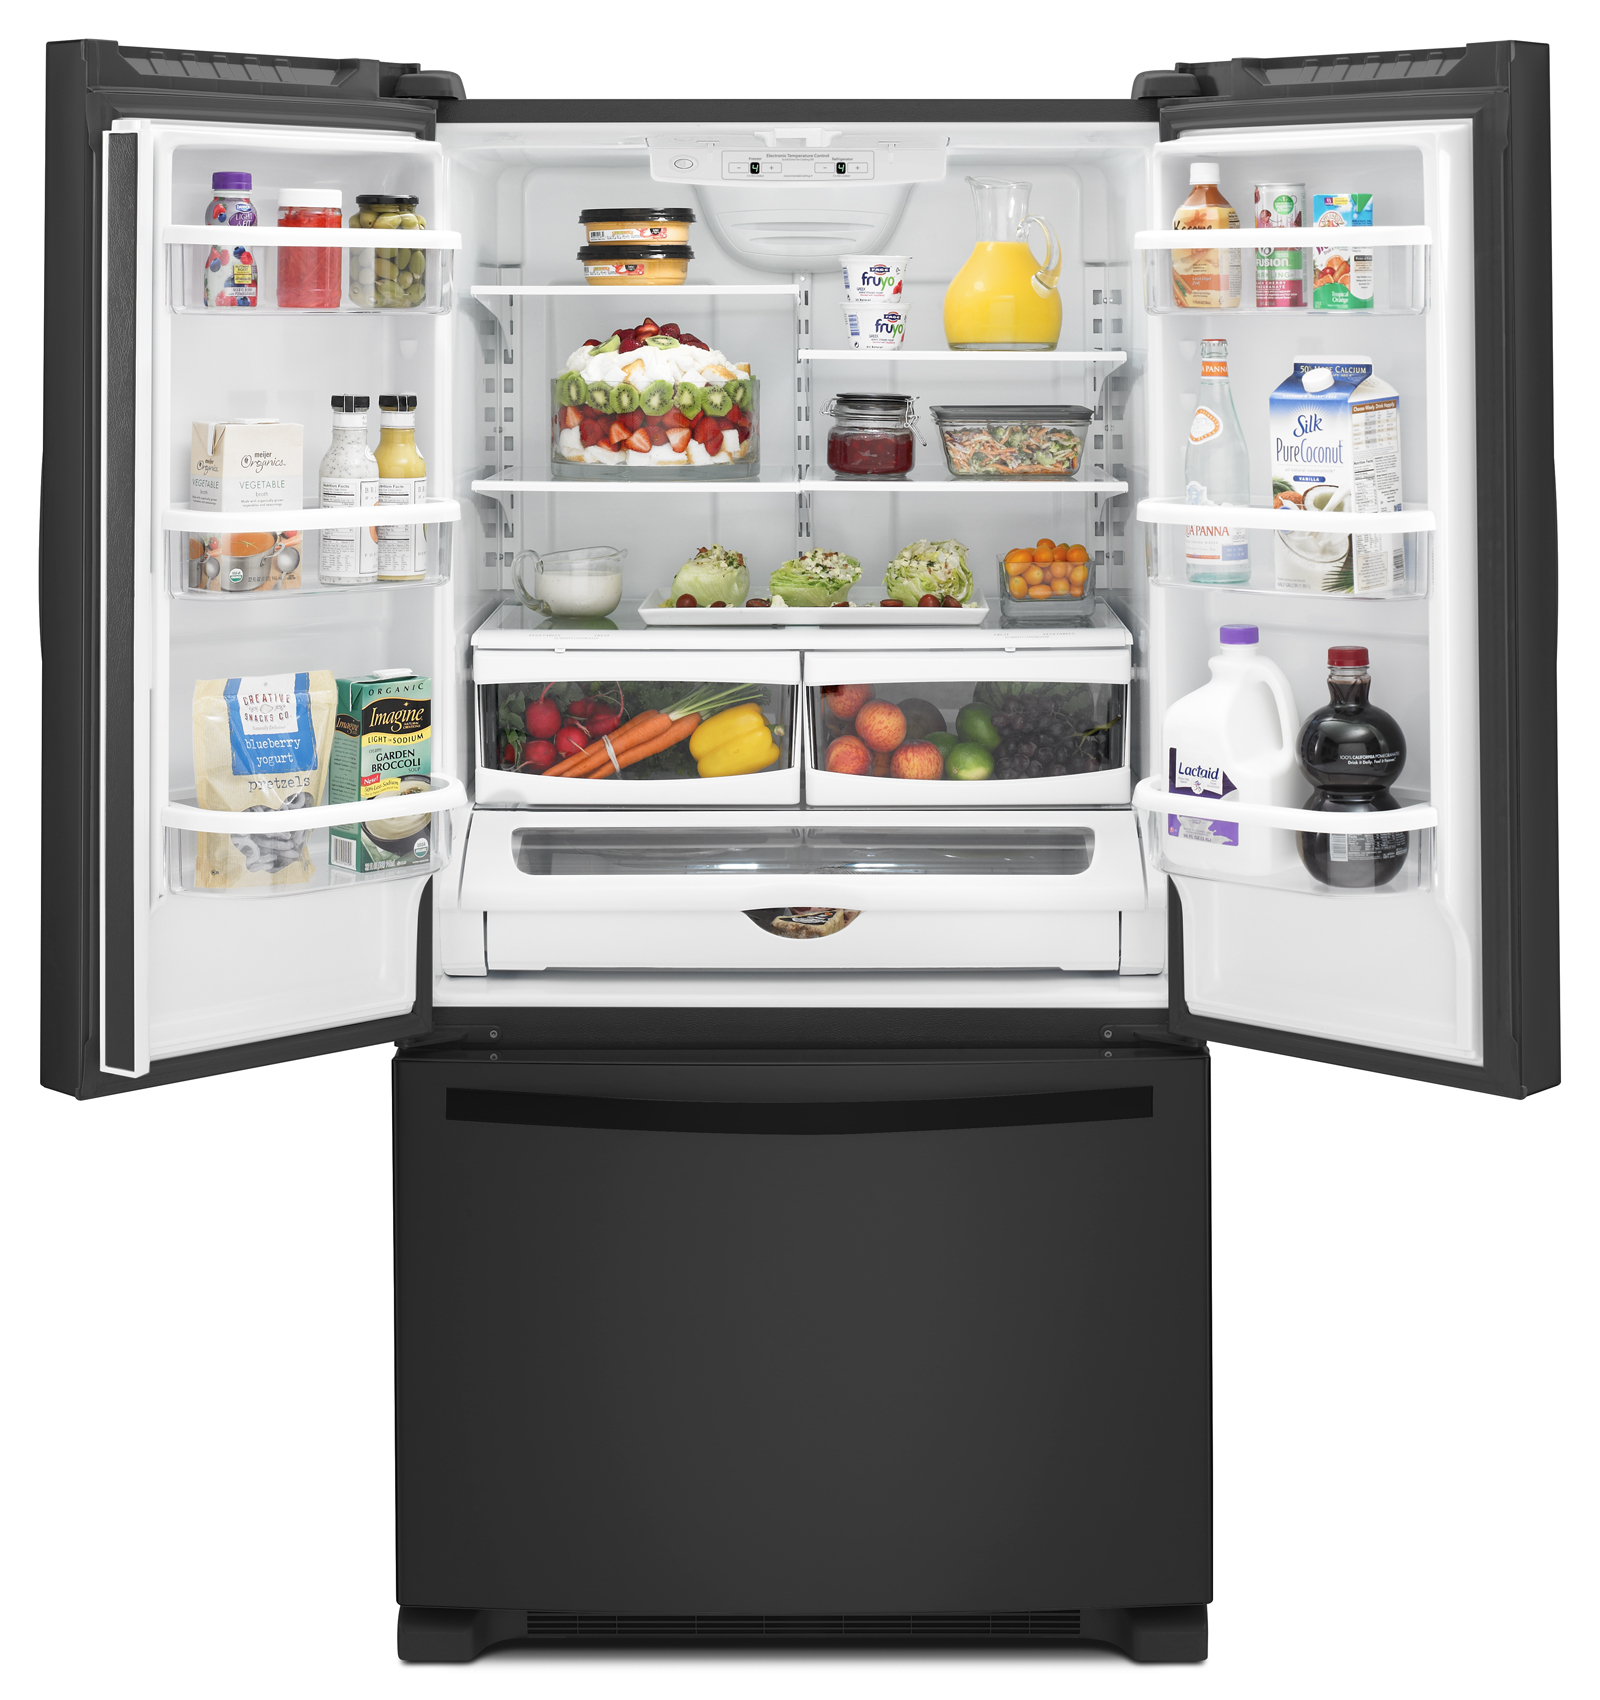 Whirlpool WRF535SMBB 25 cu. ft. French Door Refrigerator  - Black